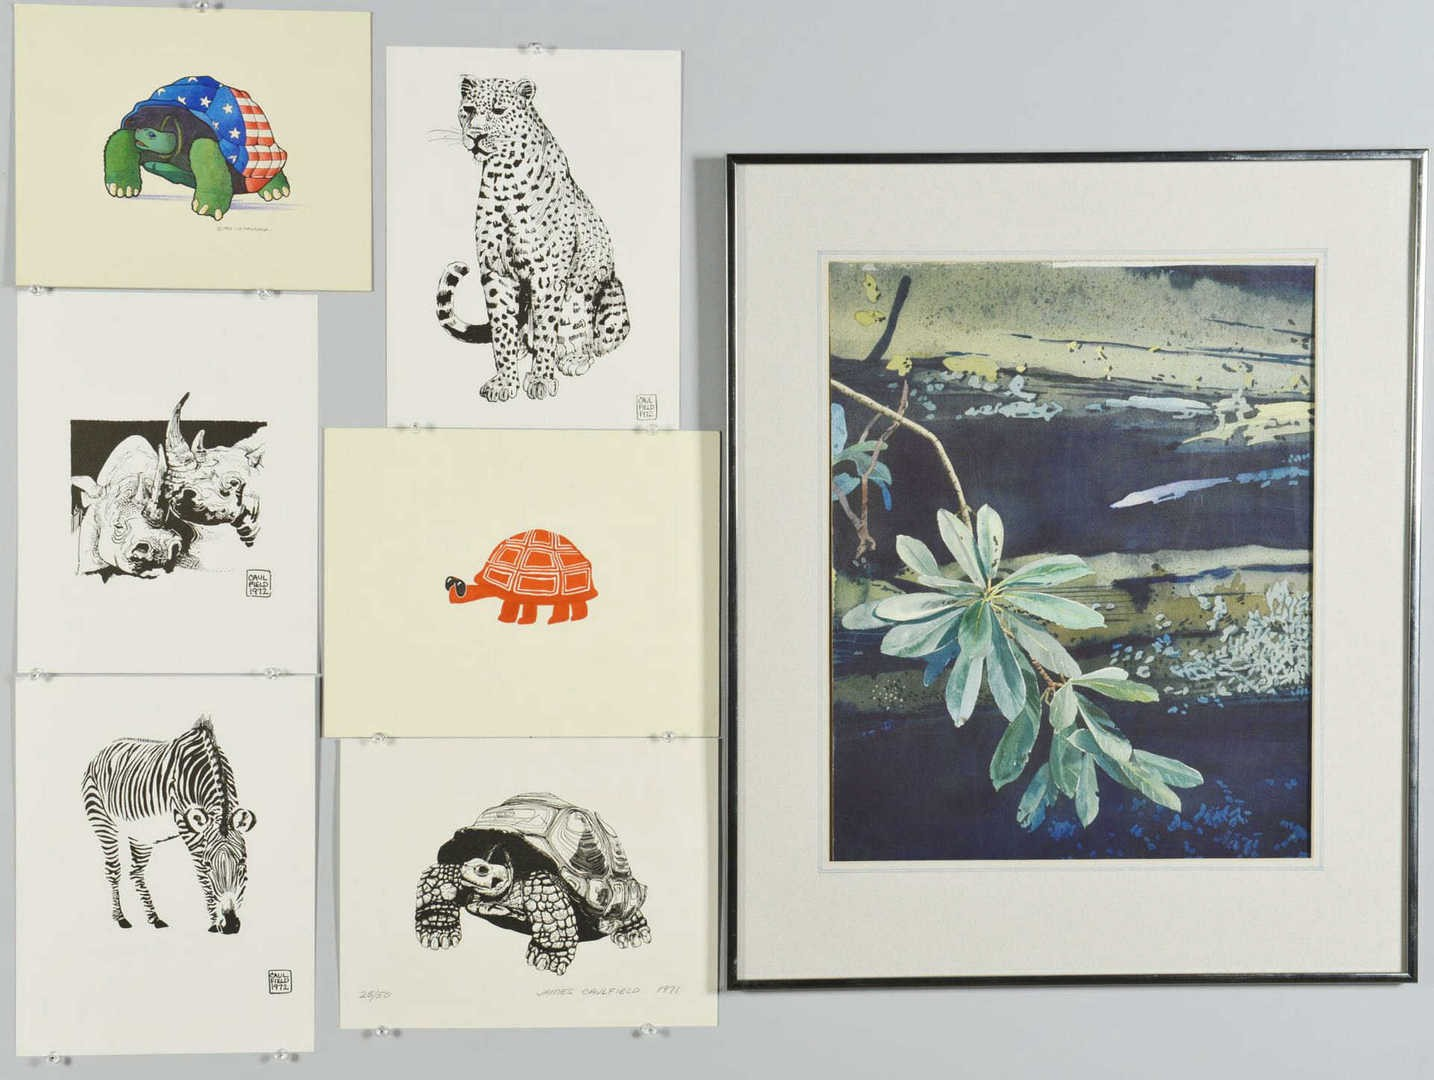 Lot 786: Seven Works by James Caulfield